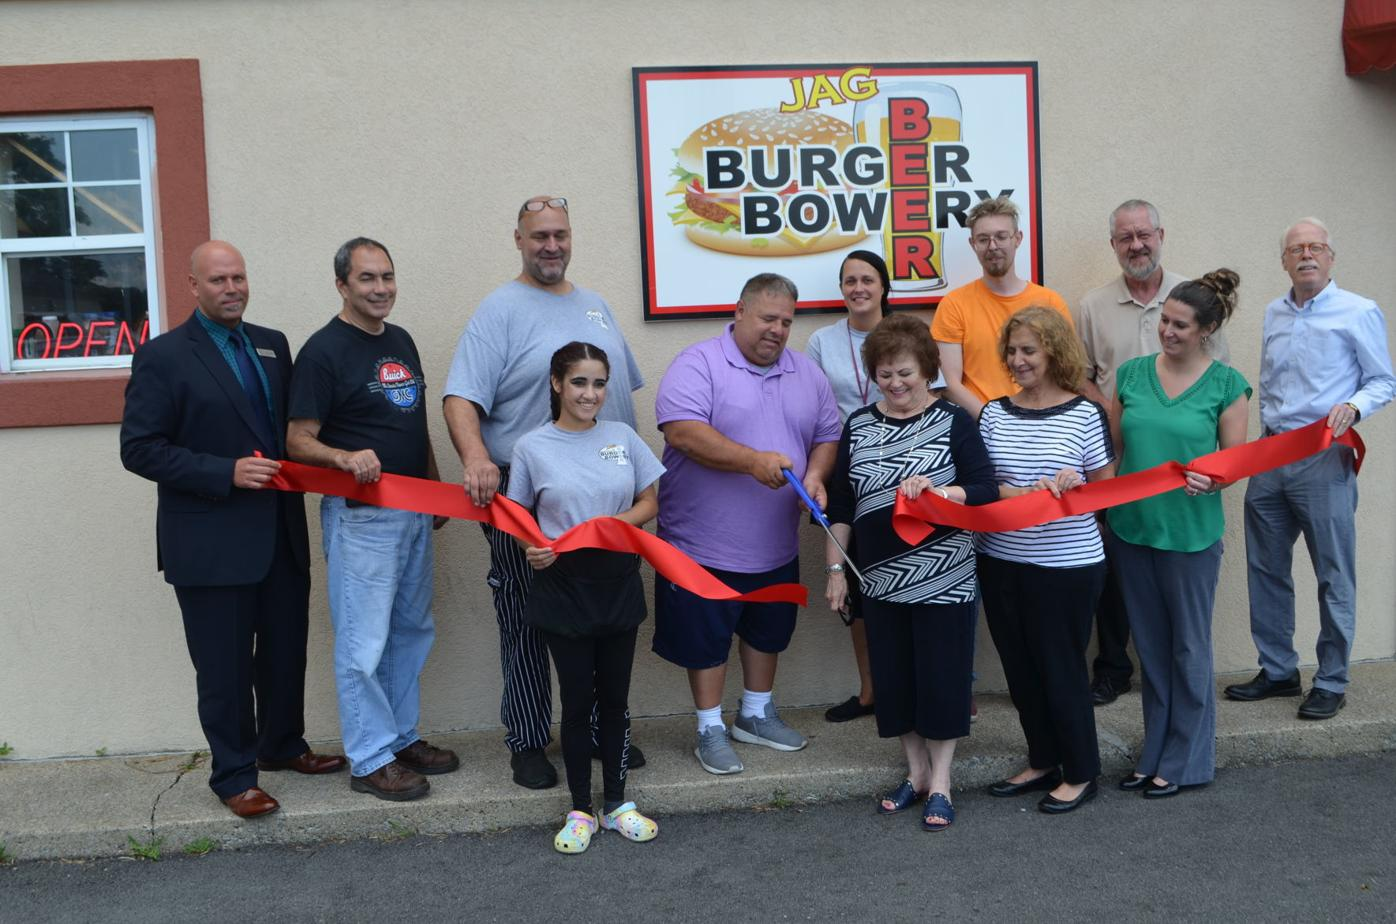 Marion County Wv Chamber Of Commerce Holds Ribbon Cutting For Jag Beer Burger Bowery News Wvnews Com